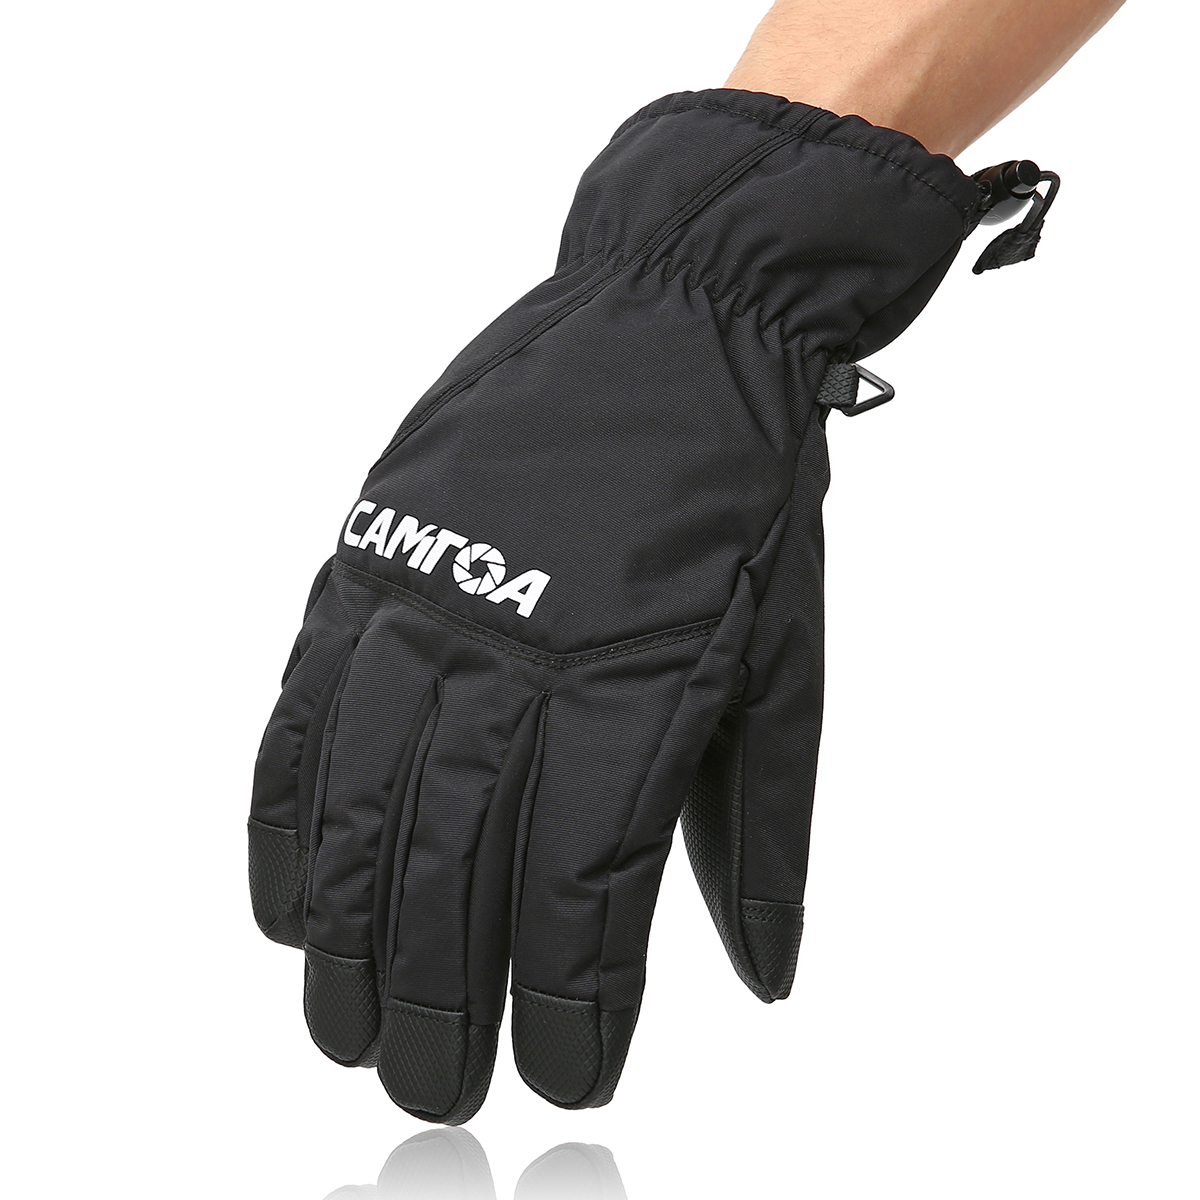 CAMTOA Winter Skiing Gloves 3M Thinsulate Warm Waterproof Breathable Snow Gloves for Men and Women